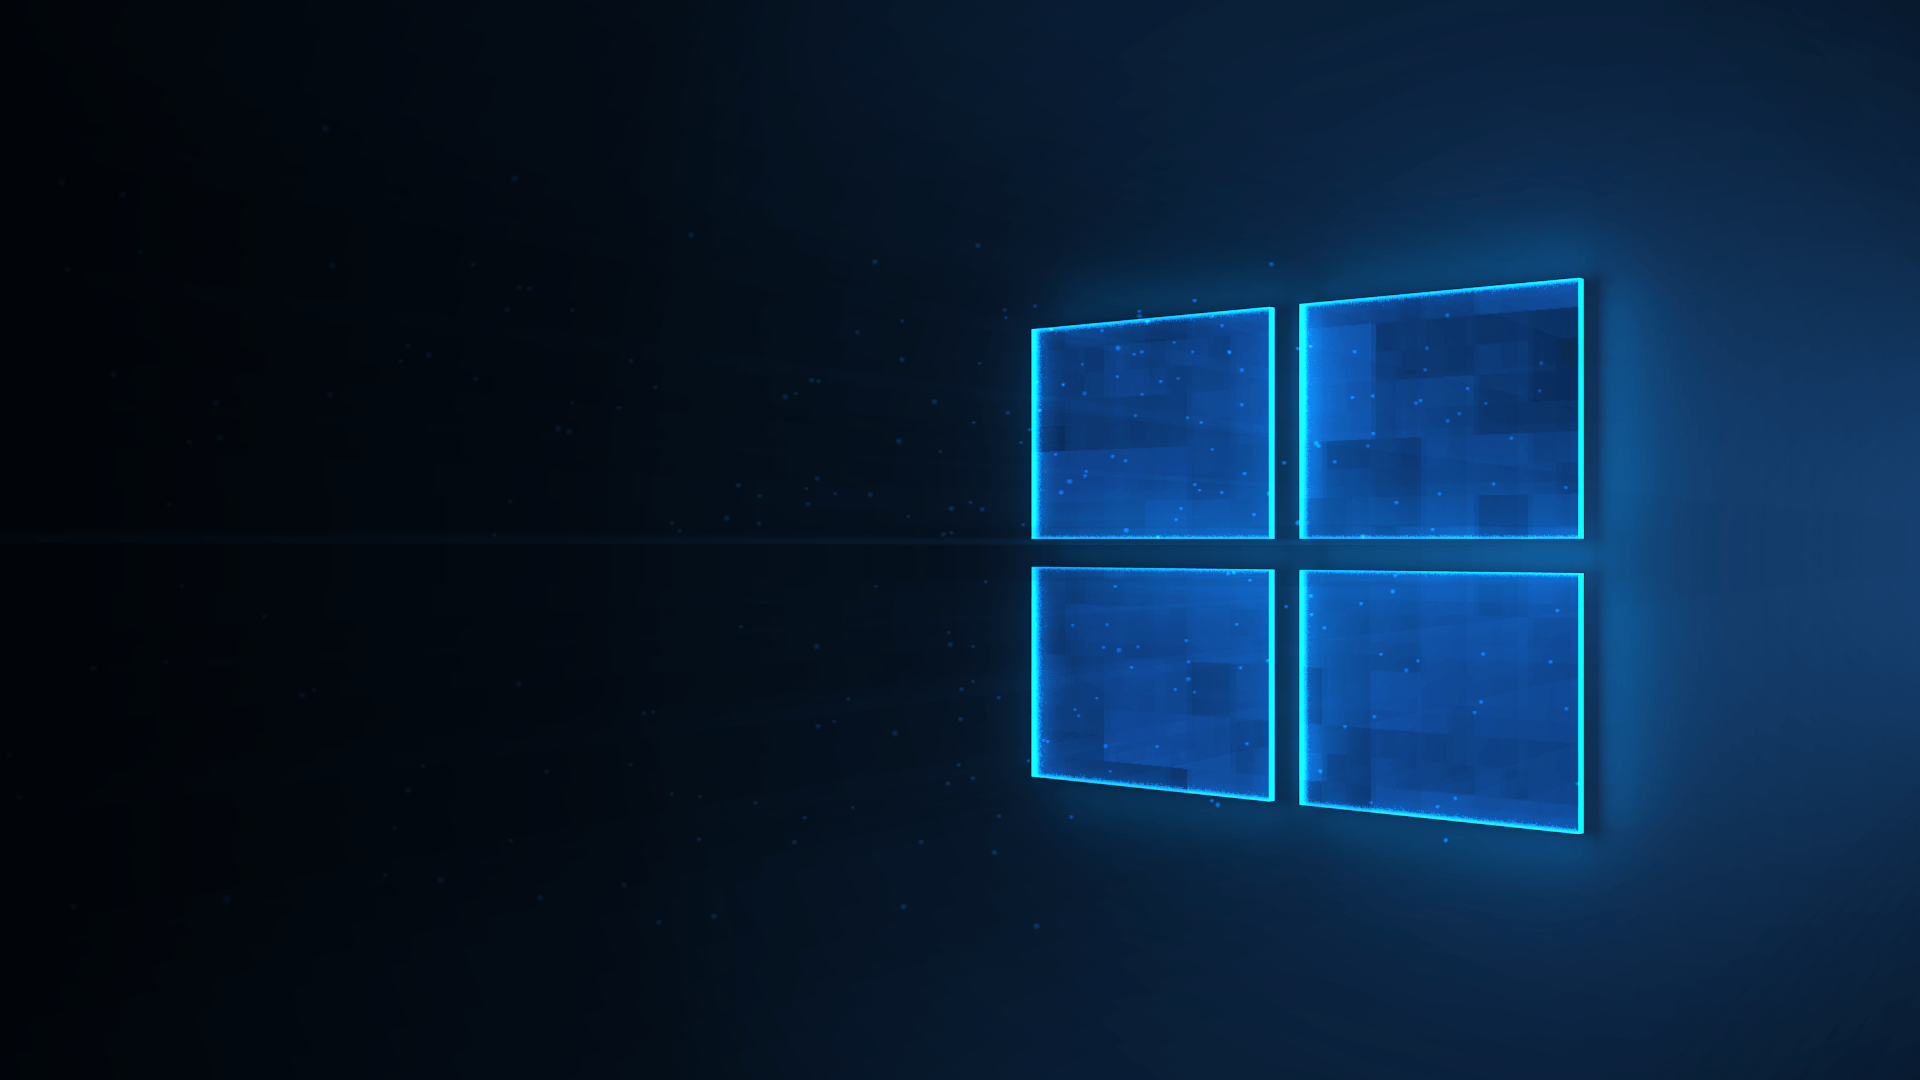 Windows Abstract Wallpapers - Top Free Windows Abstract